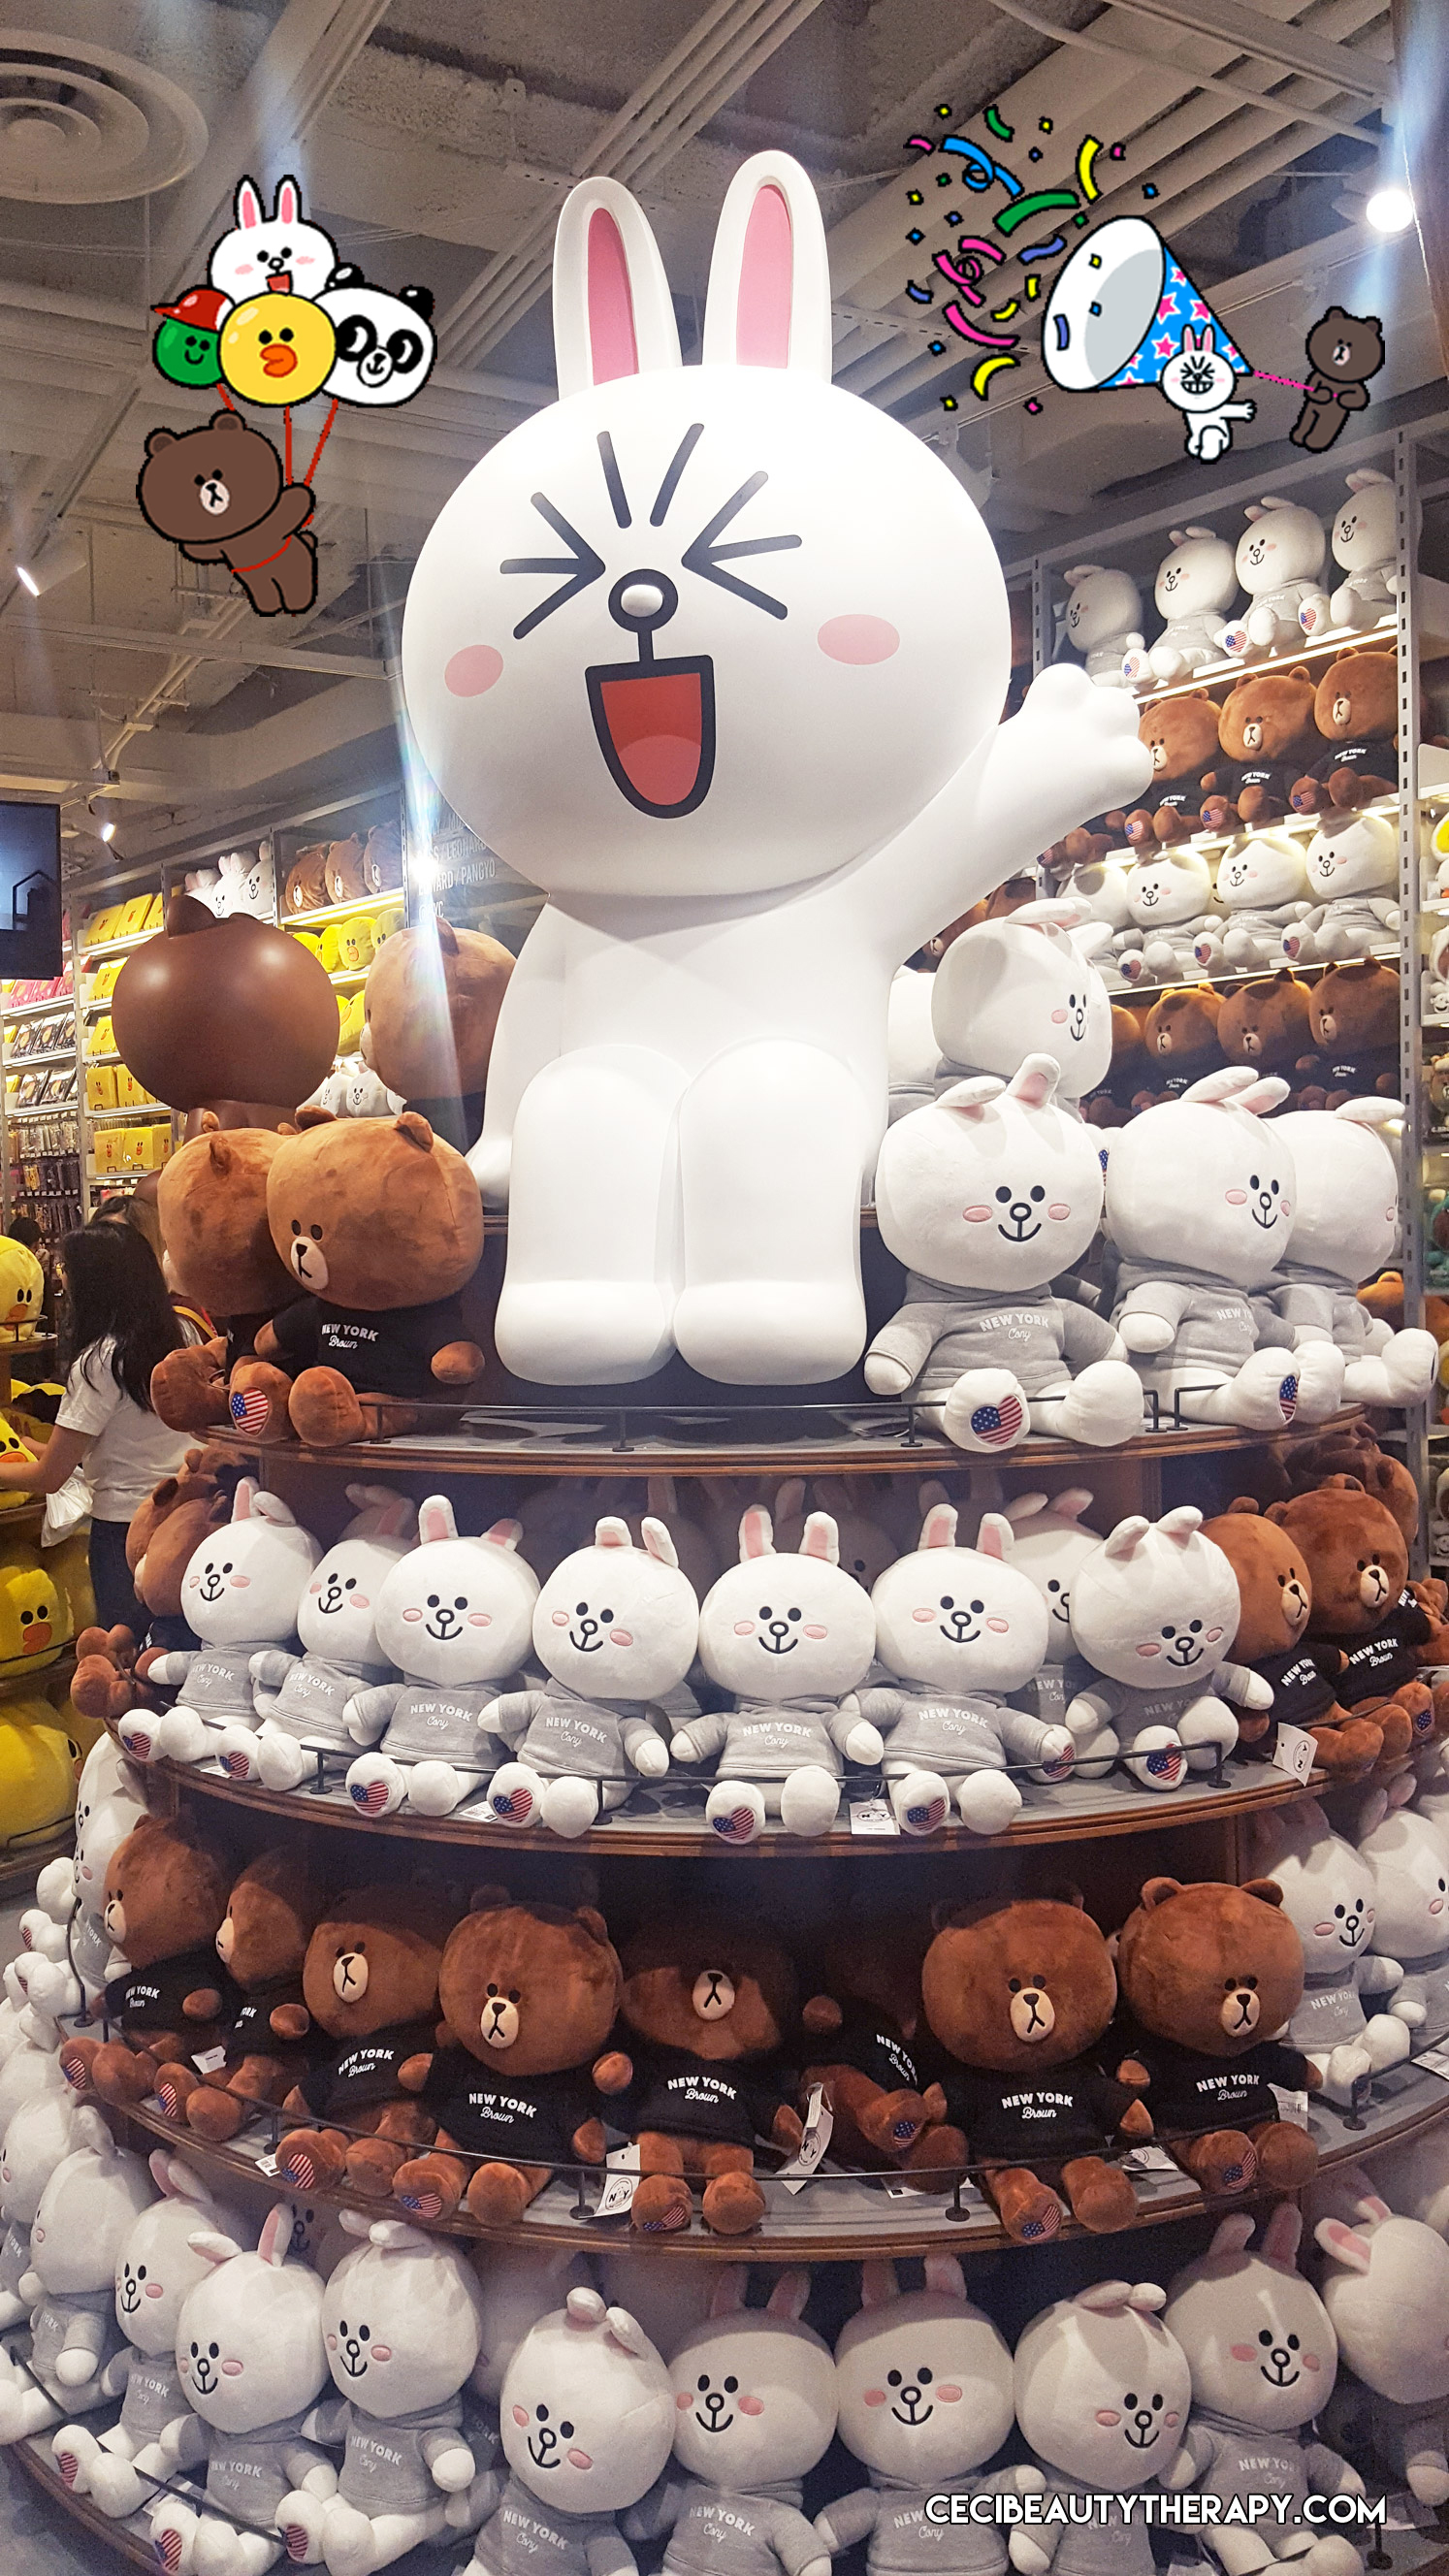 LINE_FRIENDS_NYC_TIMES_SQ_(07)